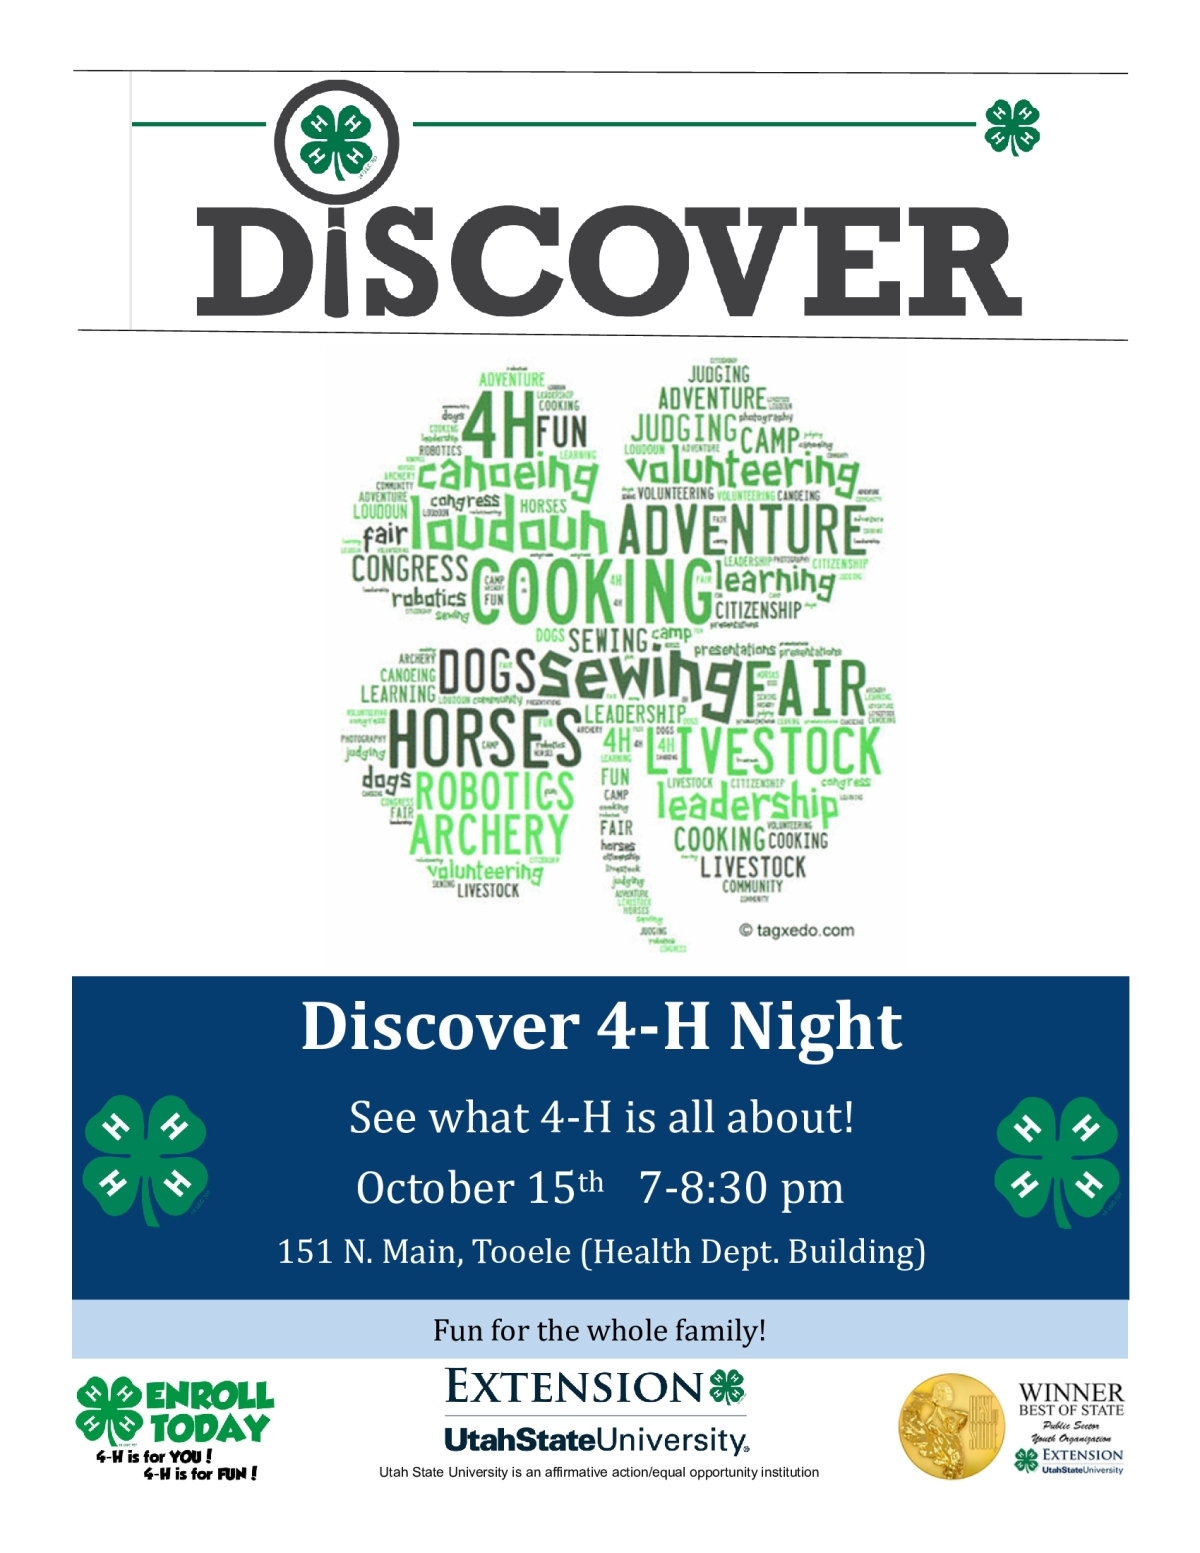 Discover 4-H Night @ Health Department Building